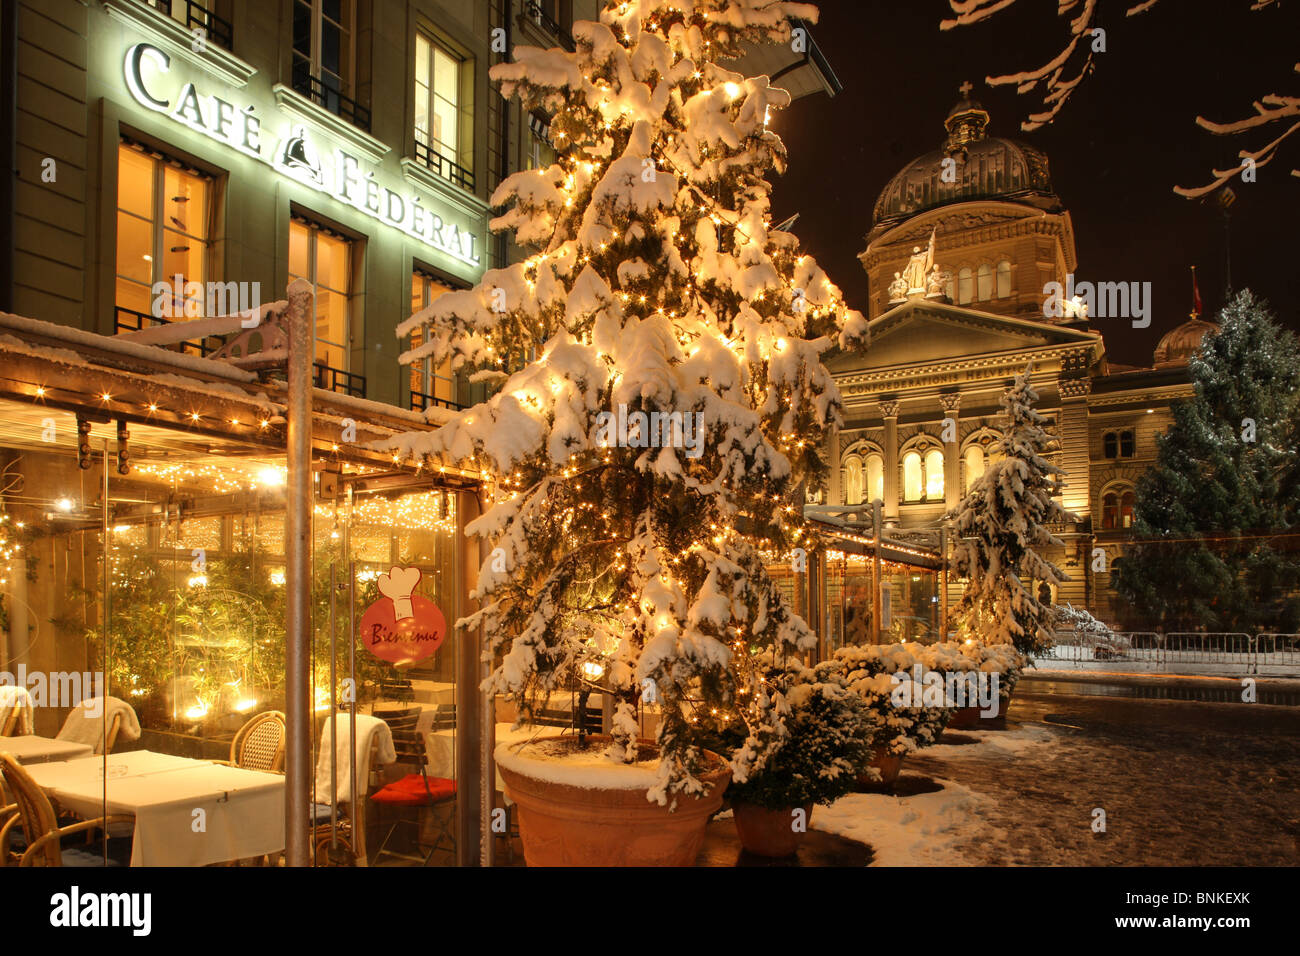 bern christmas stockfotos bern christmas bilder alamy. Black Bedroom Furniture Sets. Home Design Ideas